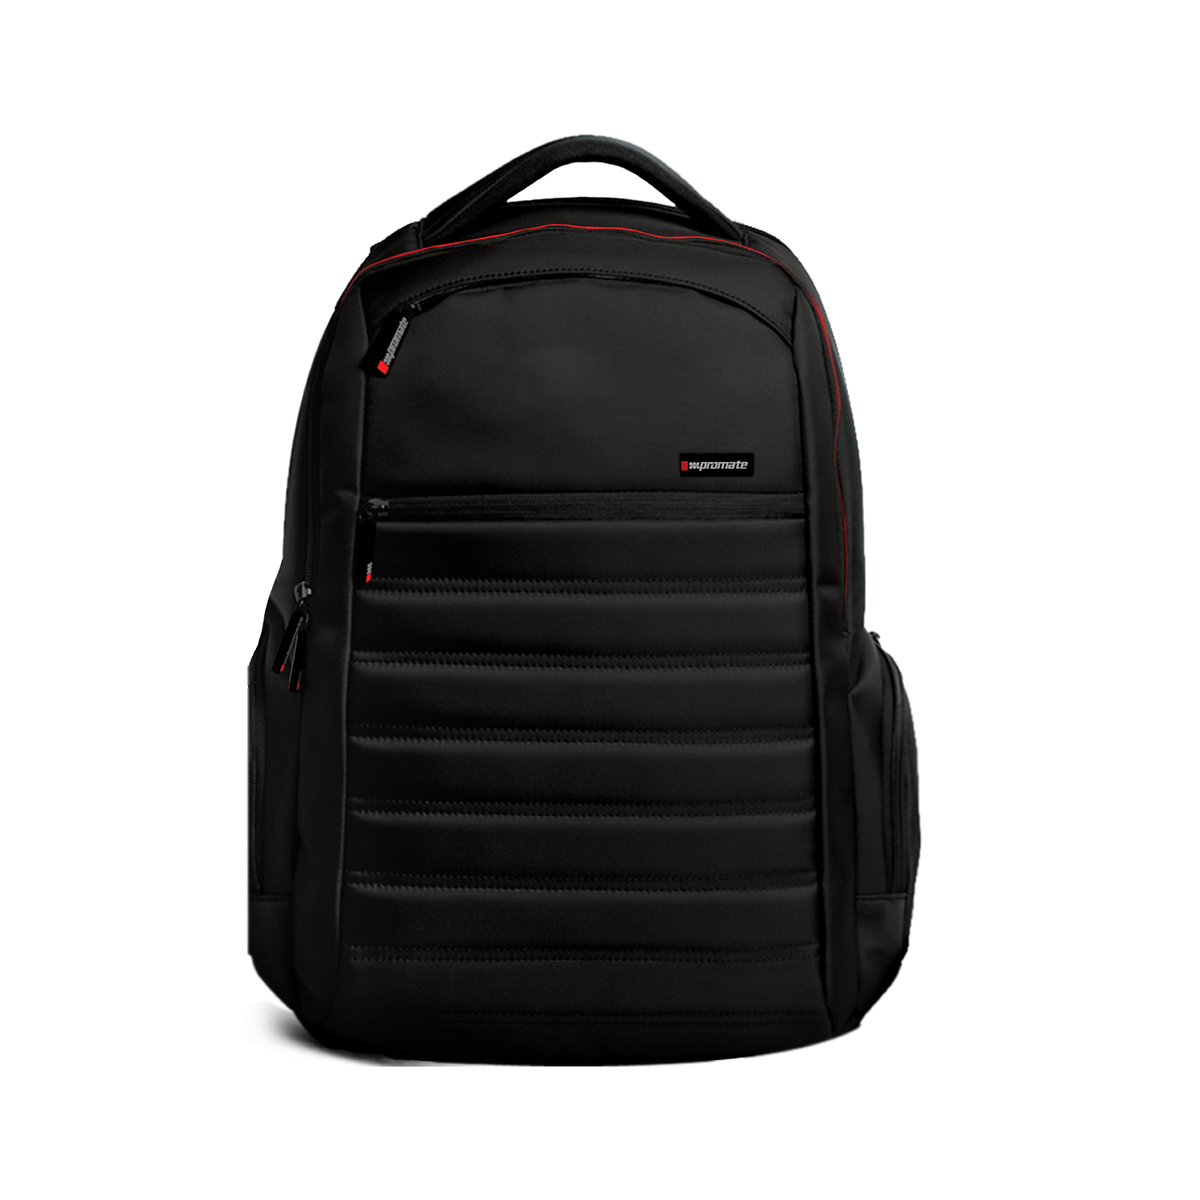 Promate 15.6-inch Laptop Backpack with Spacious Design for 15inch Laptop, Rebel-BP Black